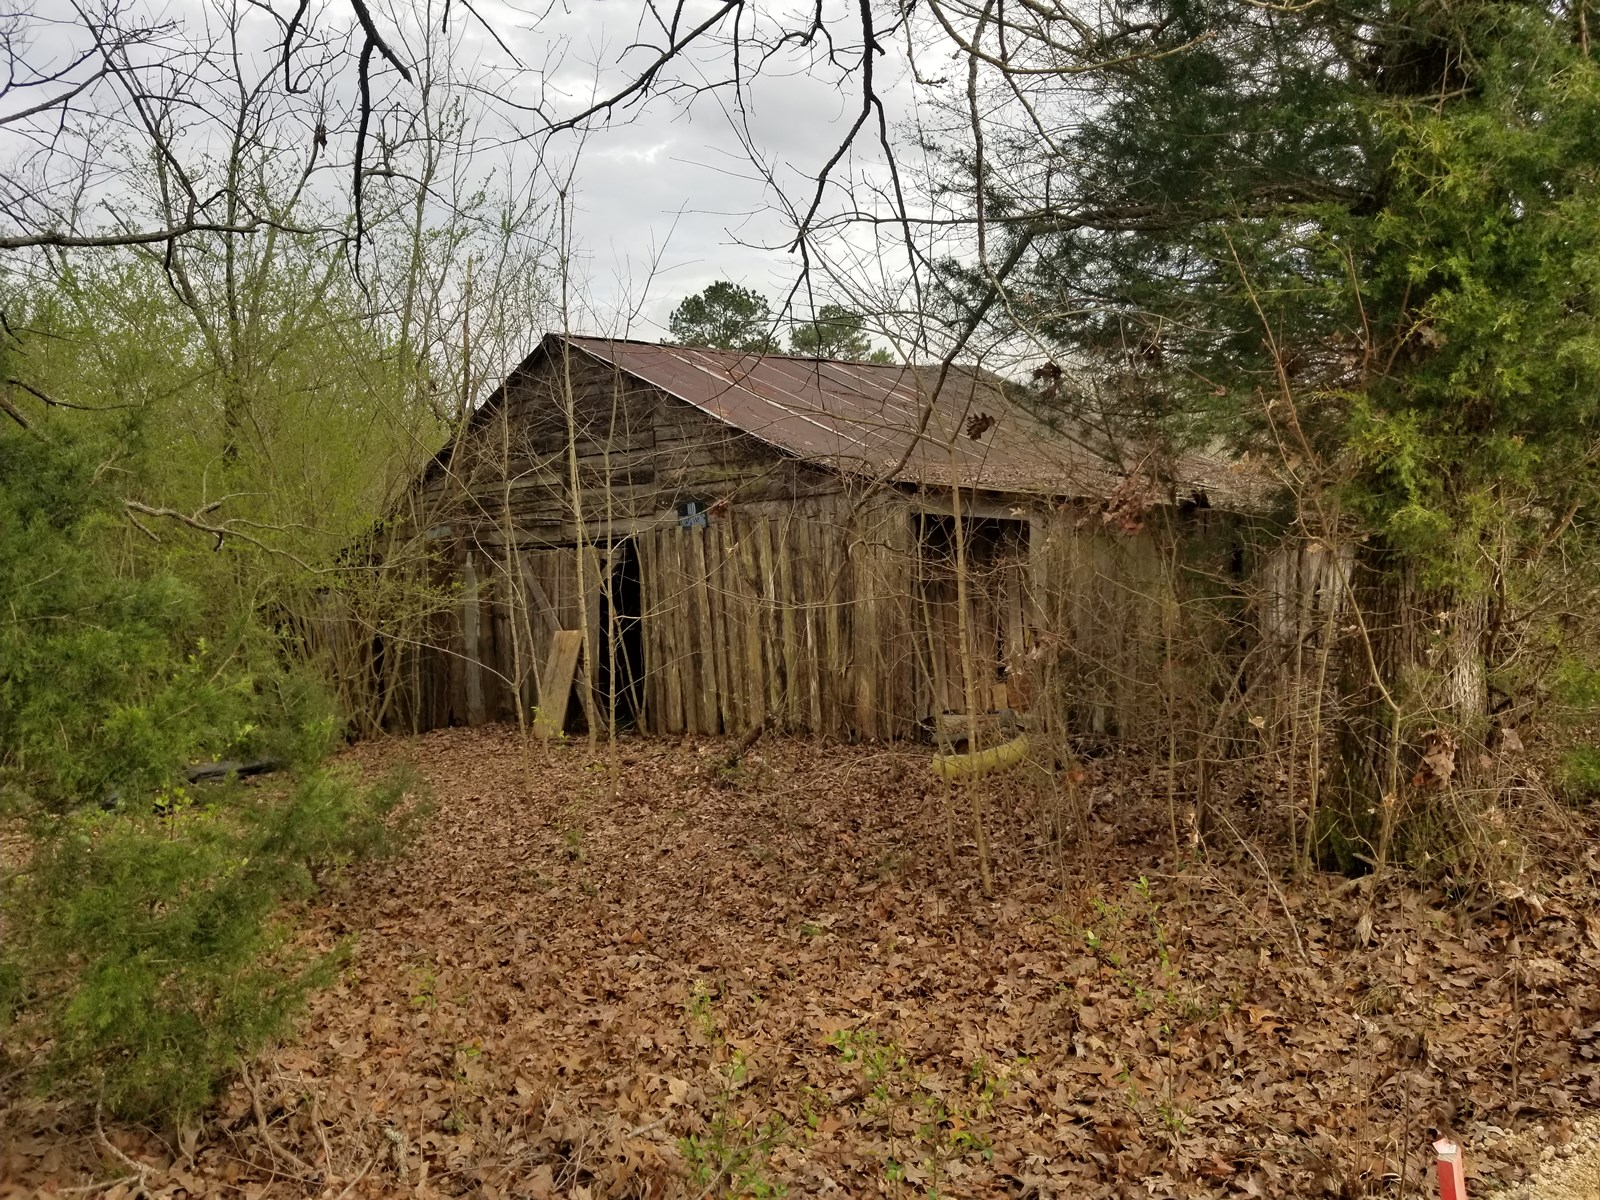 26.9 ACRES SOUTH TN LAND FOR SALE SPRING POND TIMBER HUNTING